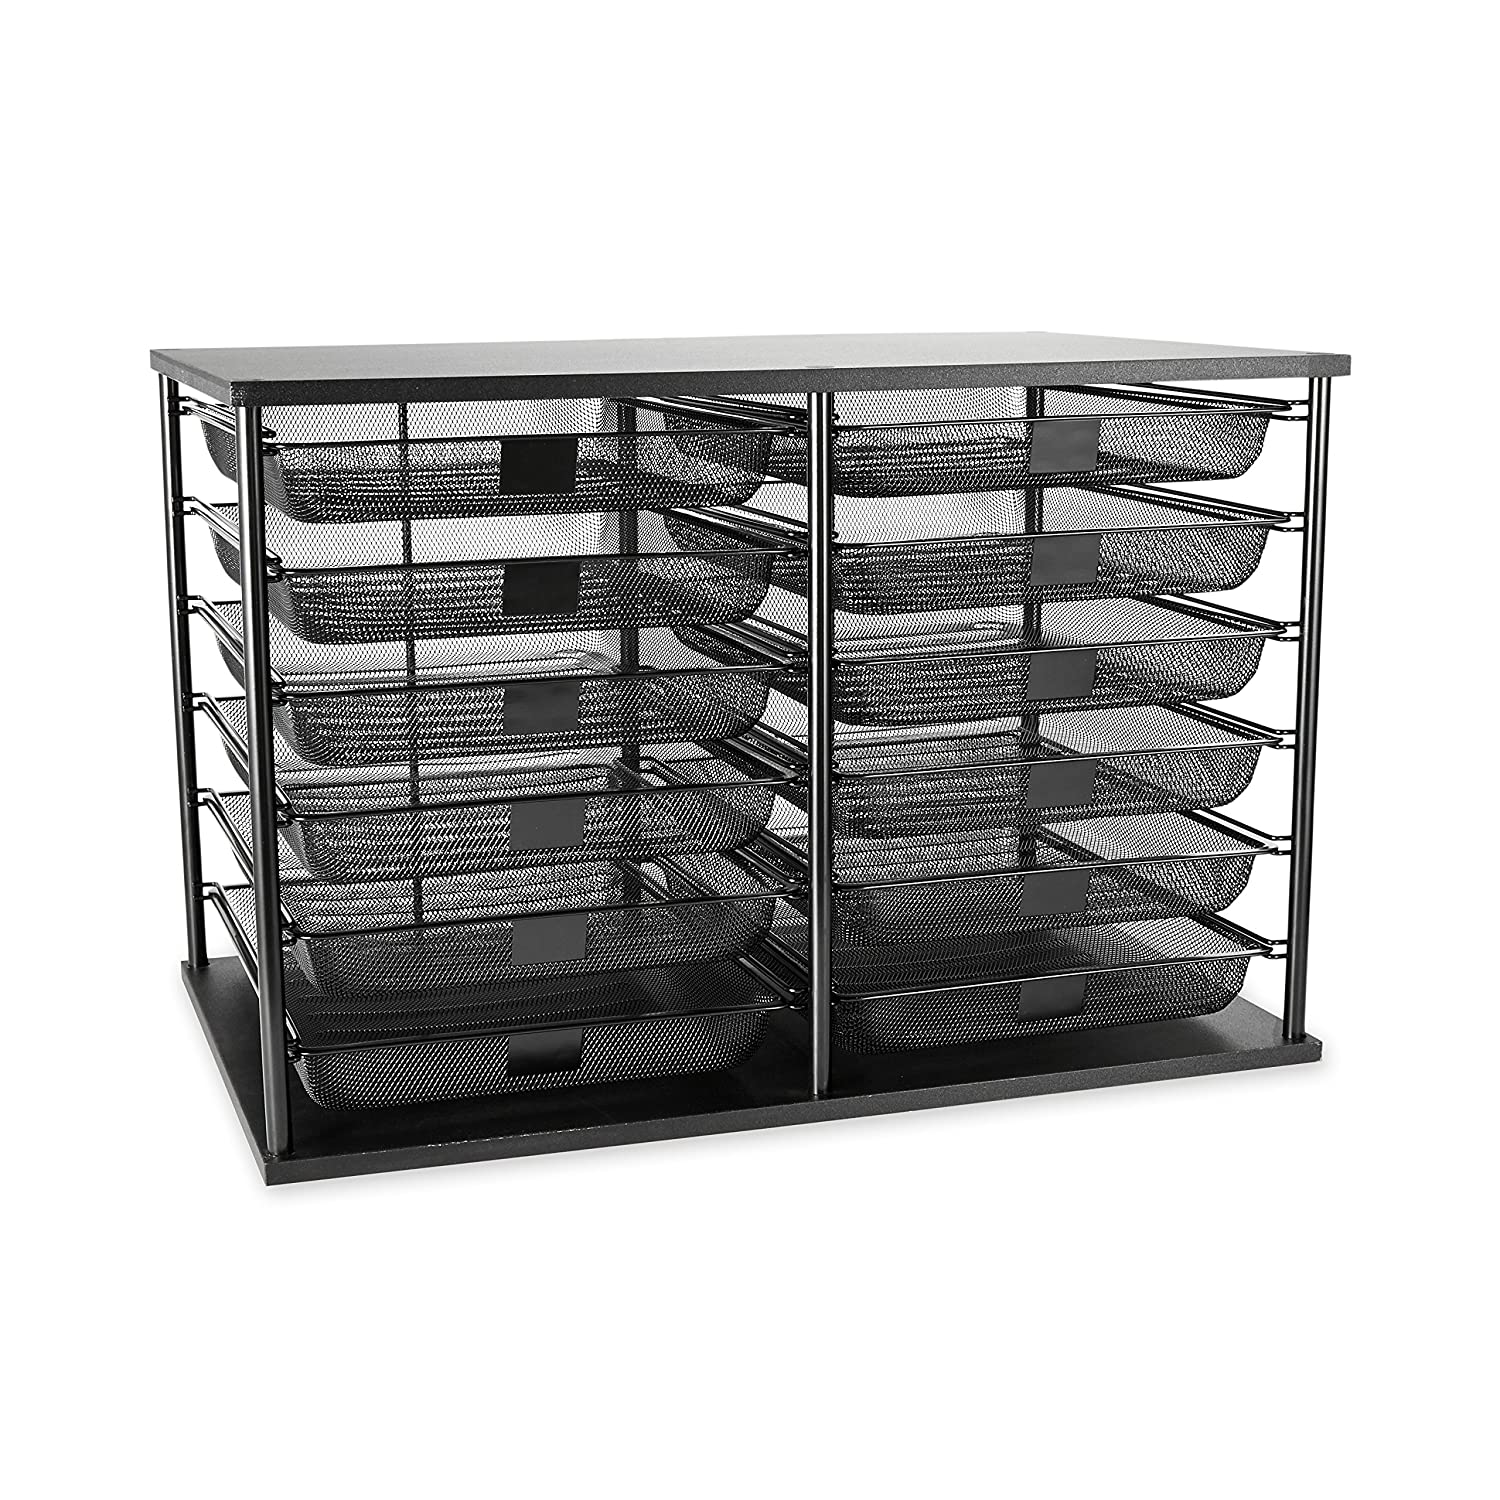 Rubbermaid file organizer tray desk mesh drawer storage - Desk drawer organizer trays ...